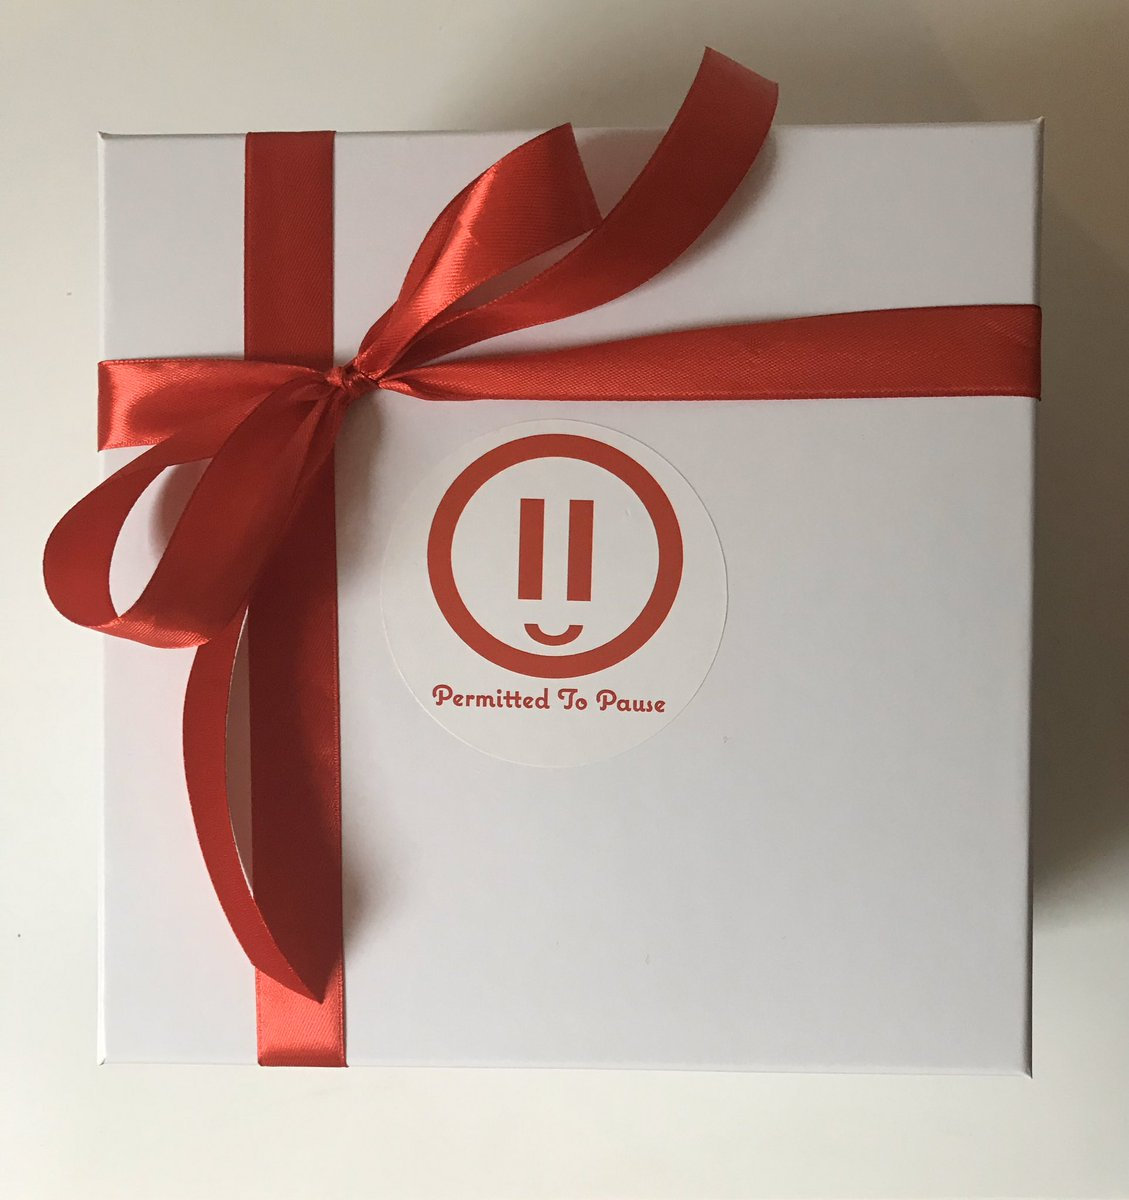 """NEW!""""It's the weekend, take a pause, buy our P2P TLC box,& donate to a good cause!""""On sale now:treat someone to a little TLC and with our medically themed fun box of treats!Each purchase makes a donation to @DoctorsDistress . For more details see permittedtopause.co.uk/p2p-tlc-boxes.…"""